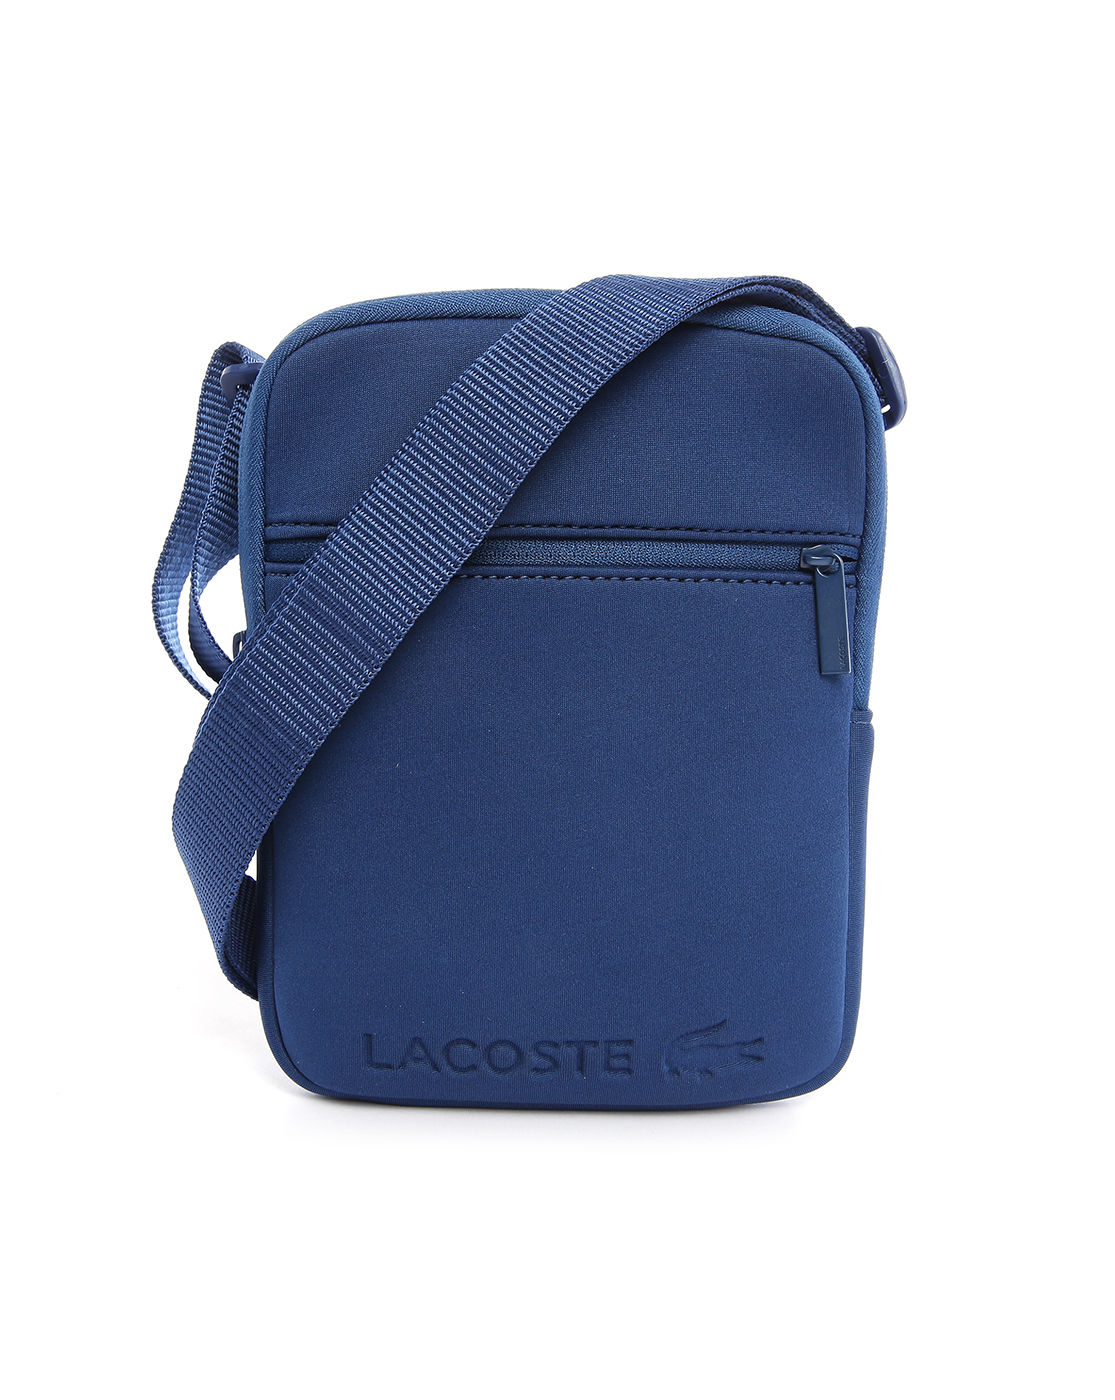 lacoste bags - photo #25